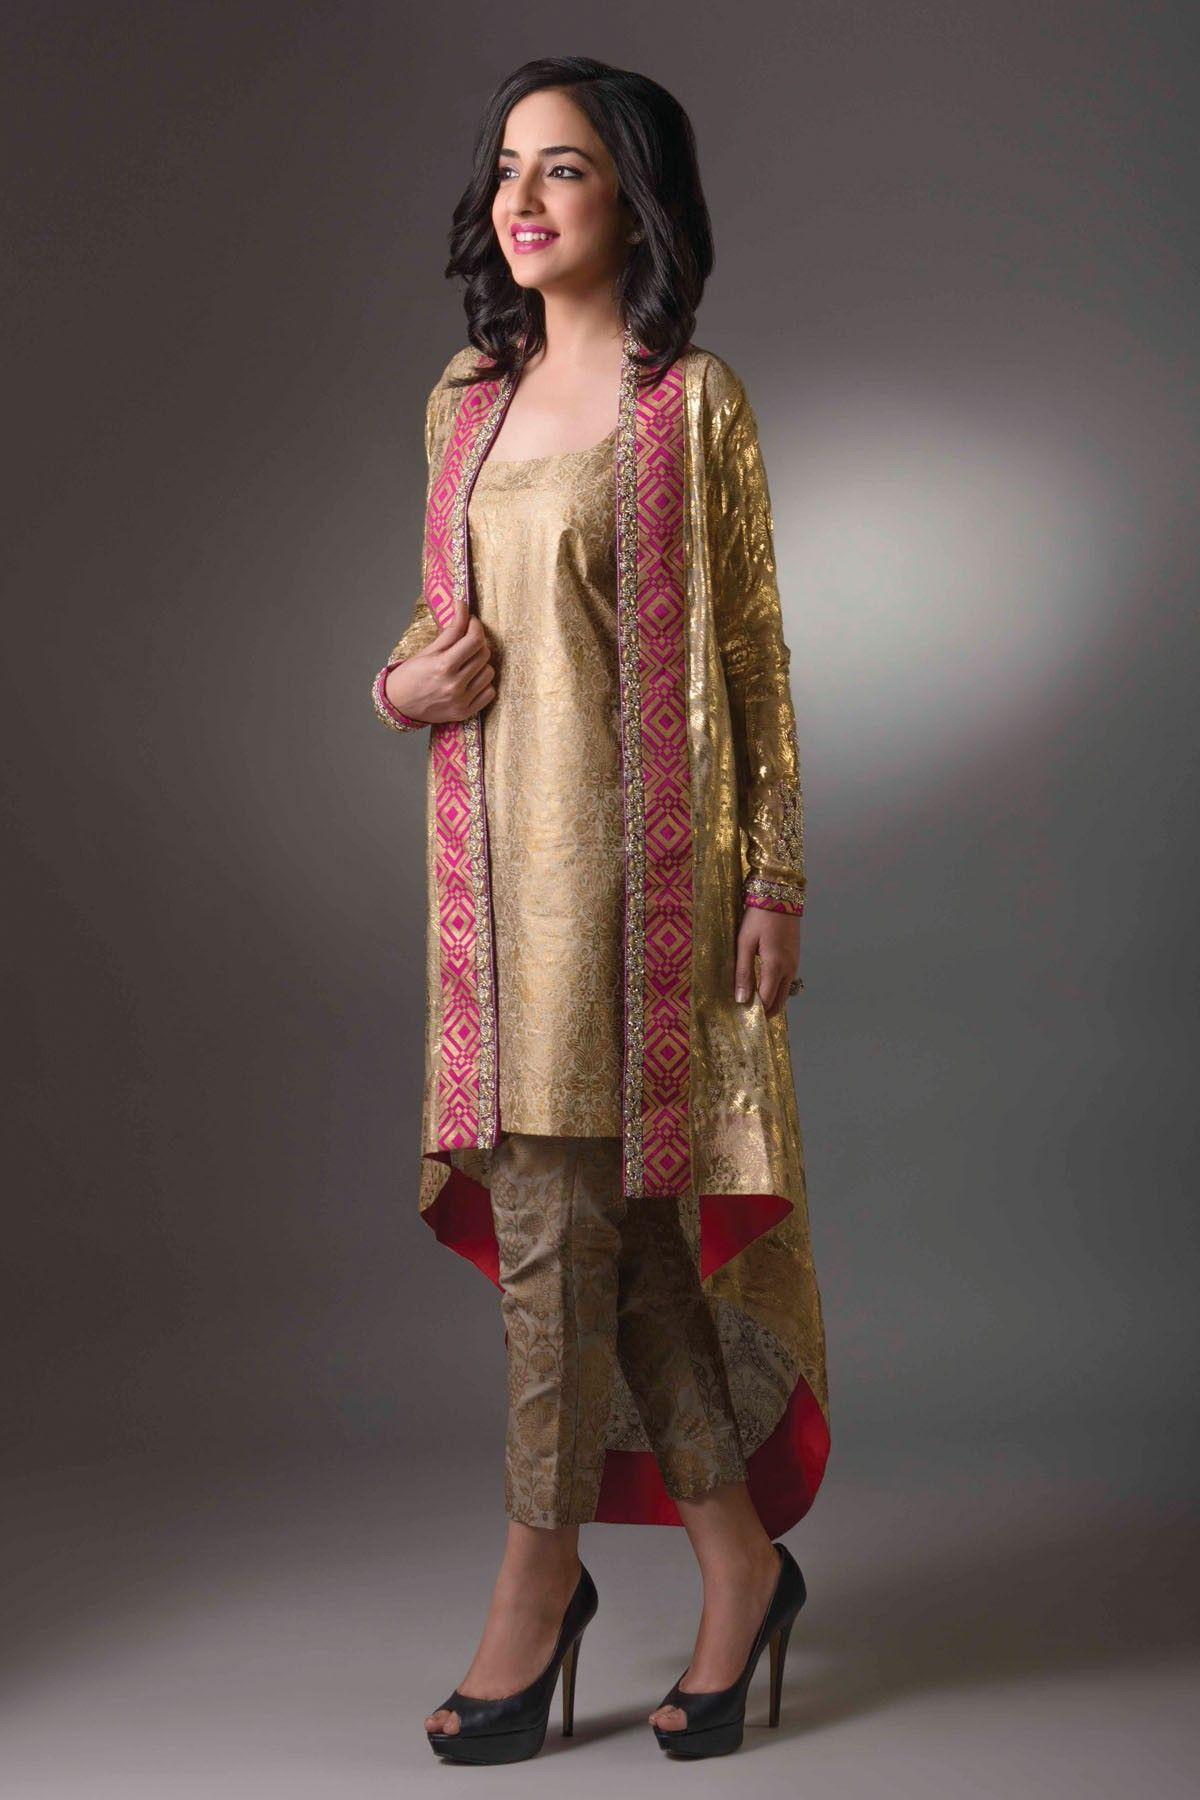 Pin by bhairabi kachari on kurtas in pinterest pakistani